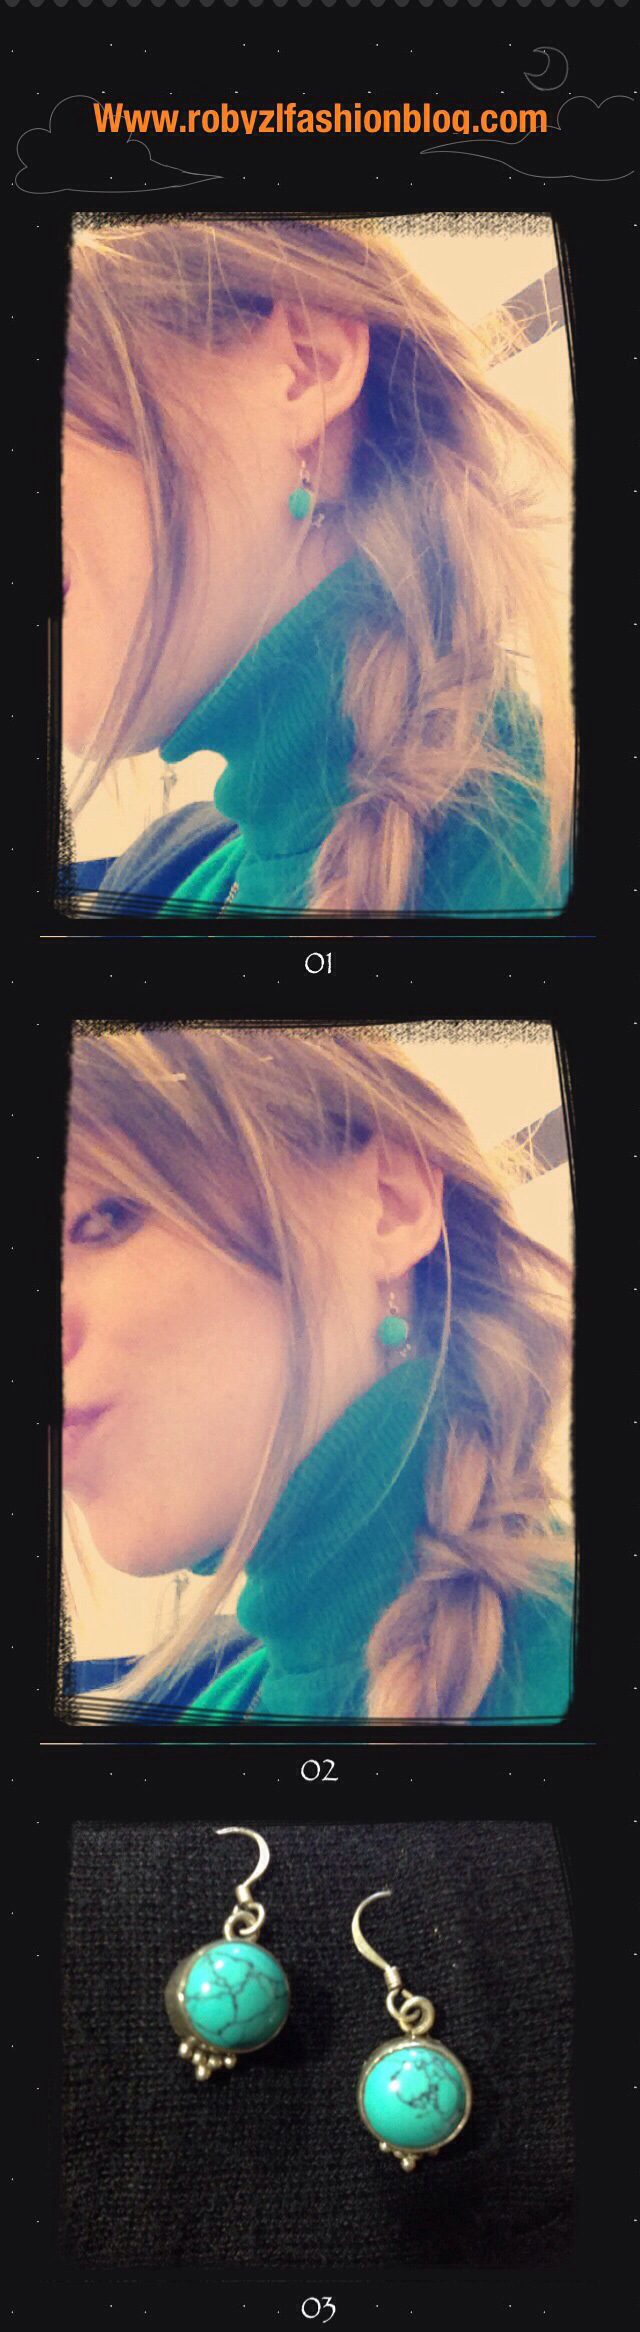 emerald- earring-me-today-robyzl-serendipity